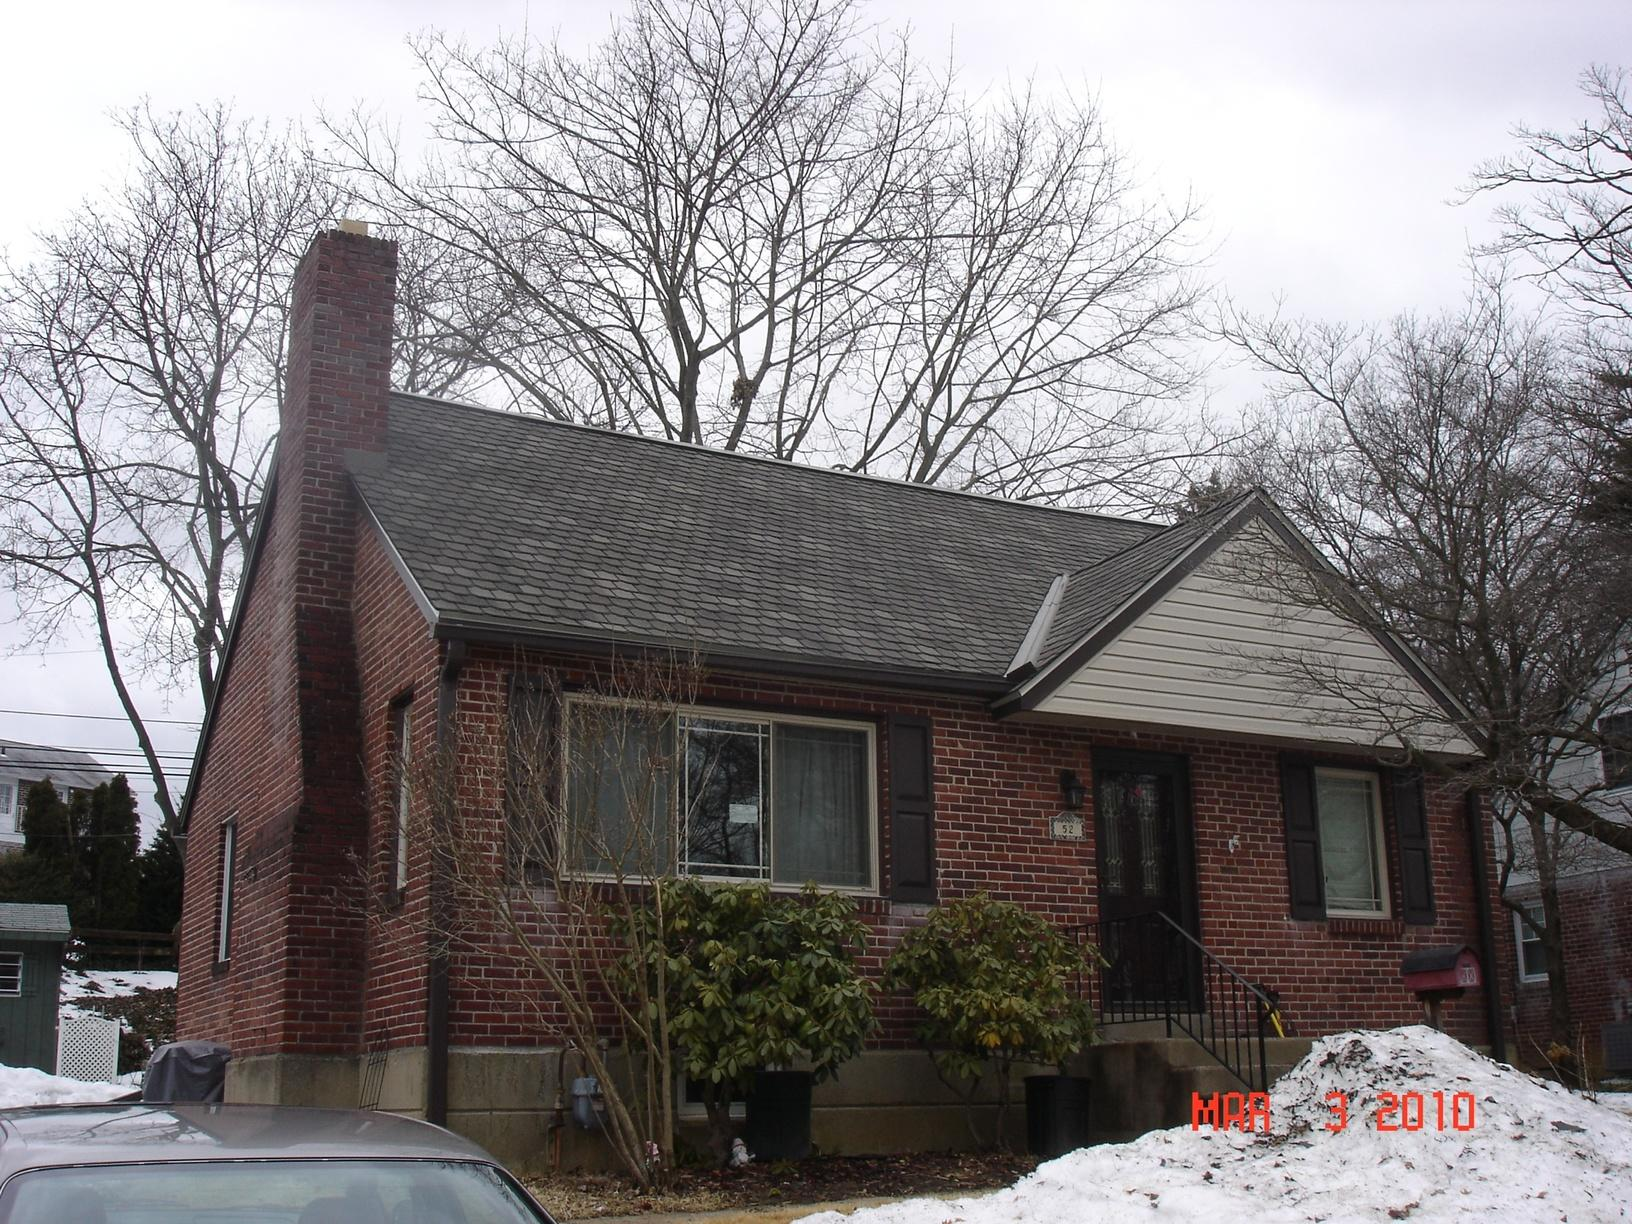 Roof Replacement in Havertown, PA